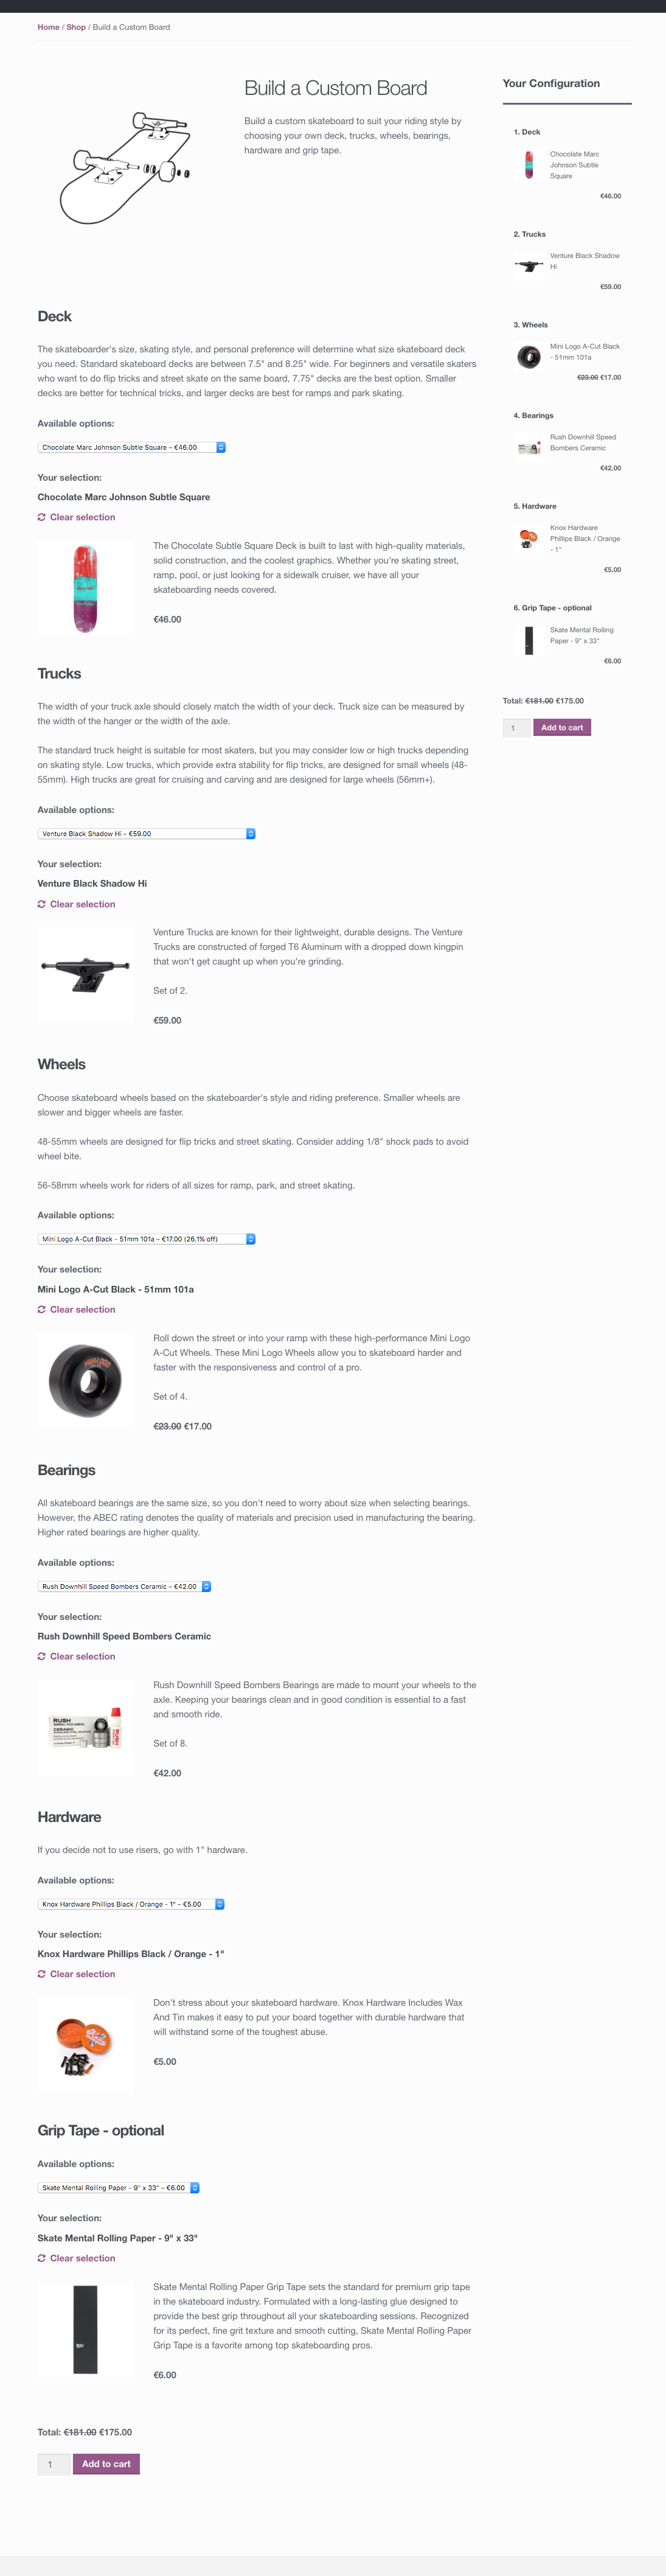 10 product page features & extensions to make them happen